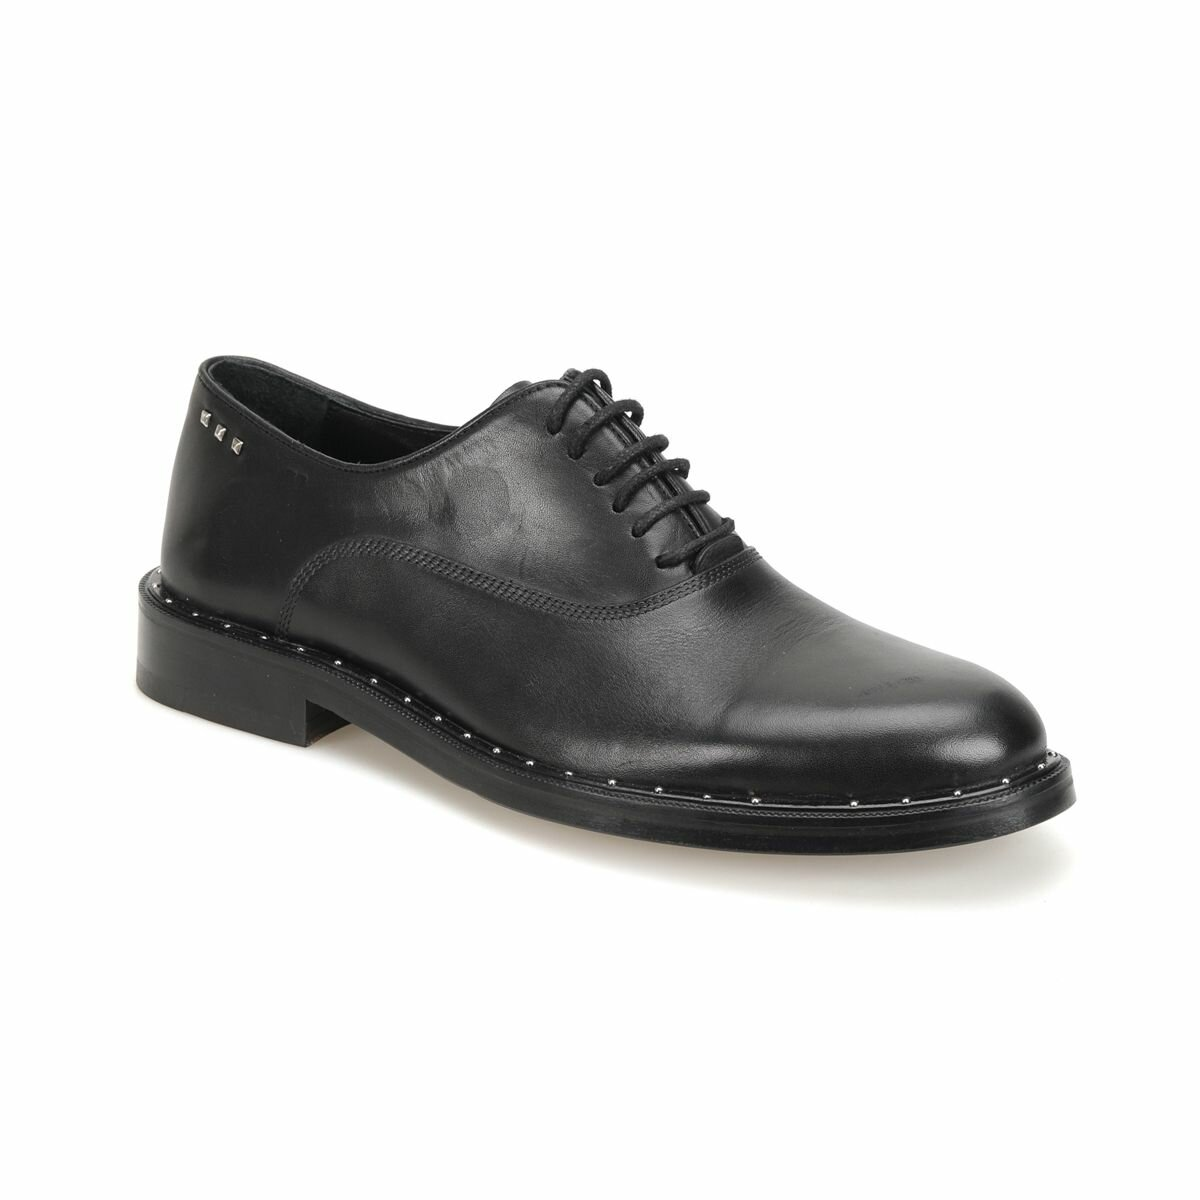 FLO 3017 Black Men 'S Classic Shoes Garamond